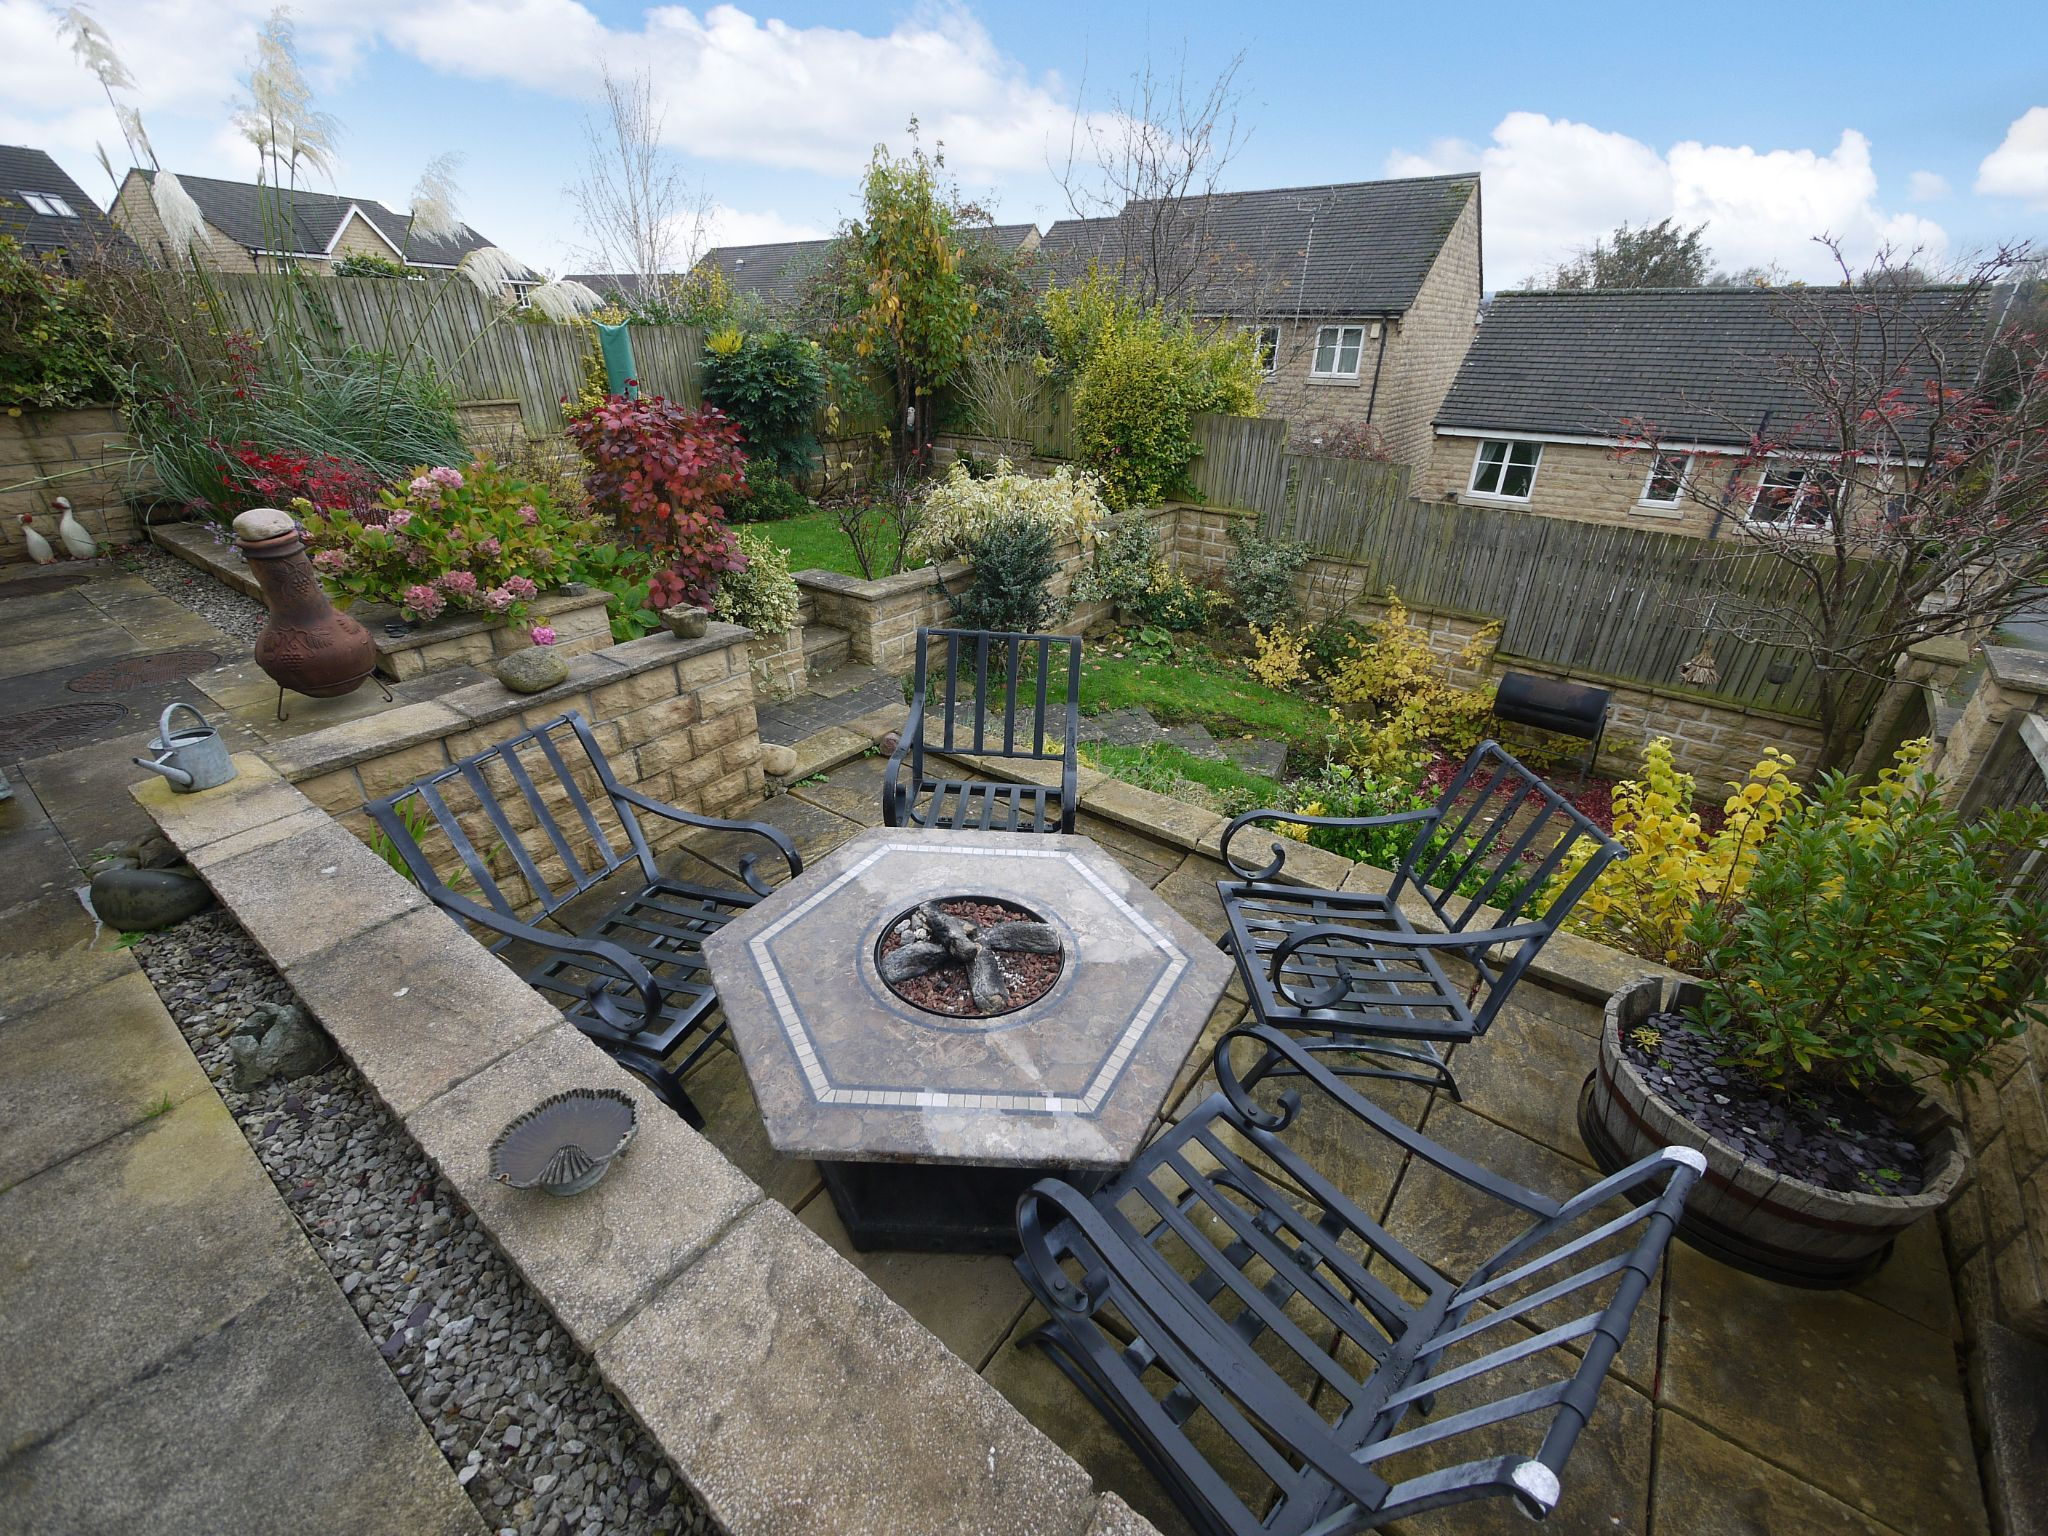 4 bedroom detached house SSTC in Brighouse - Rear garden.